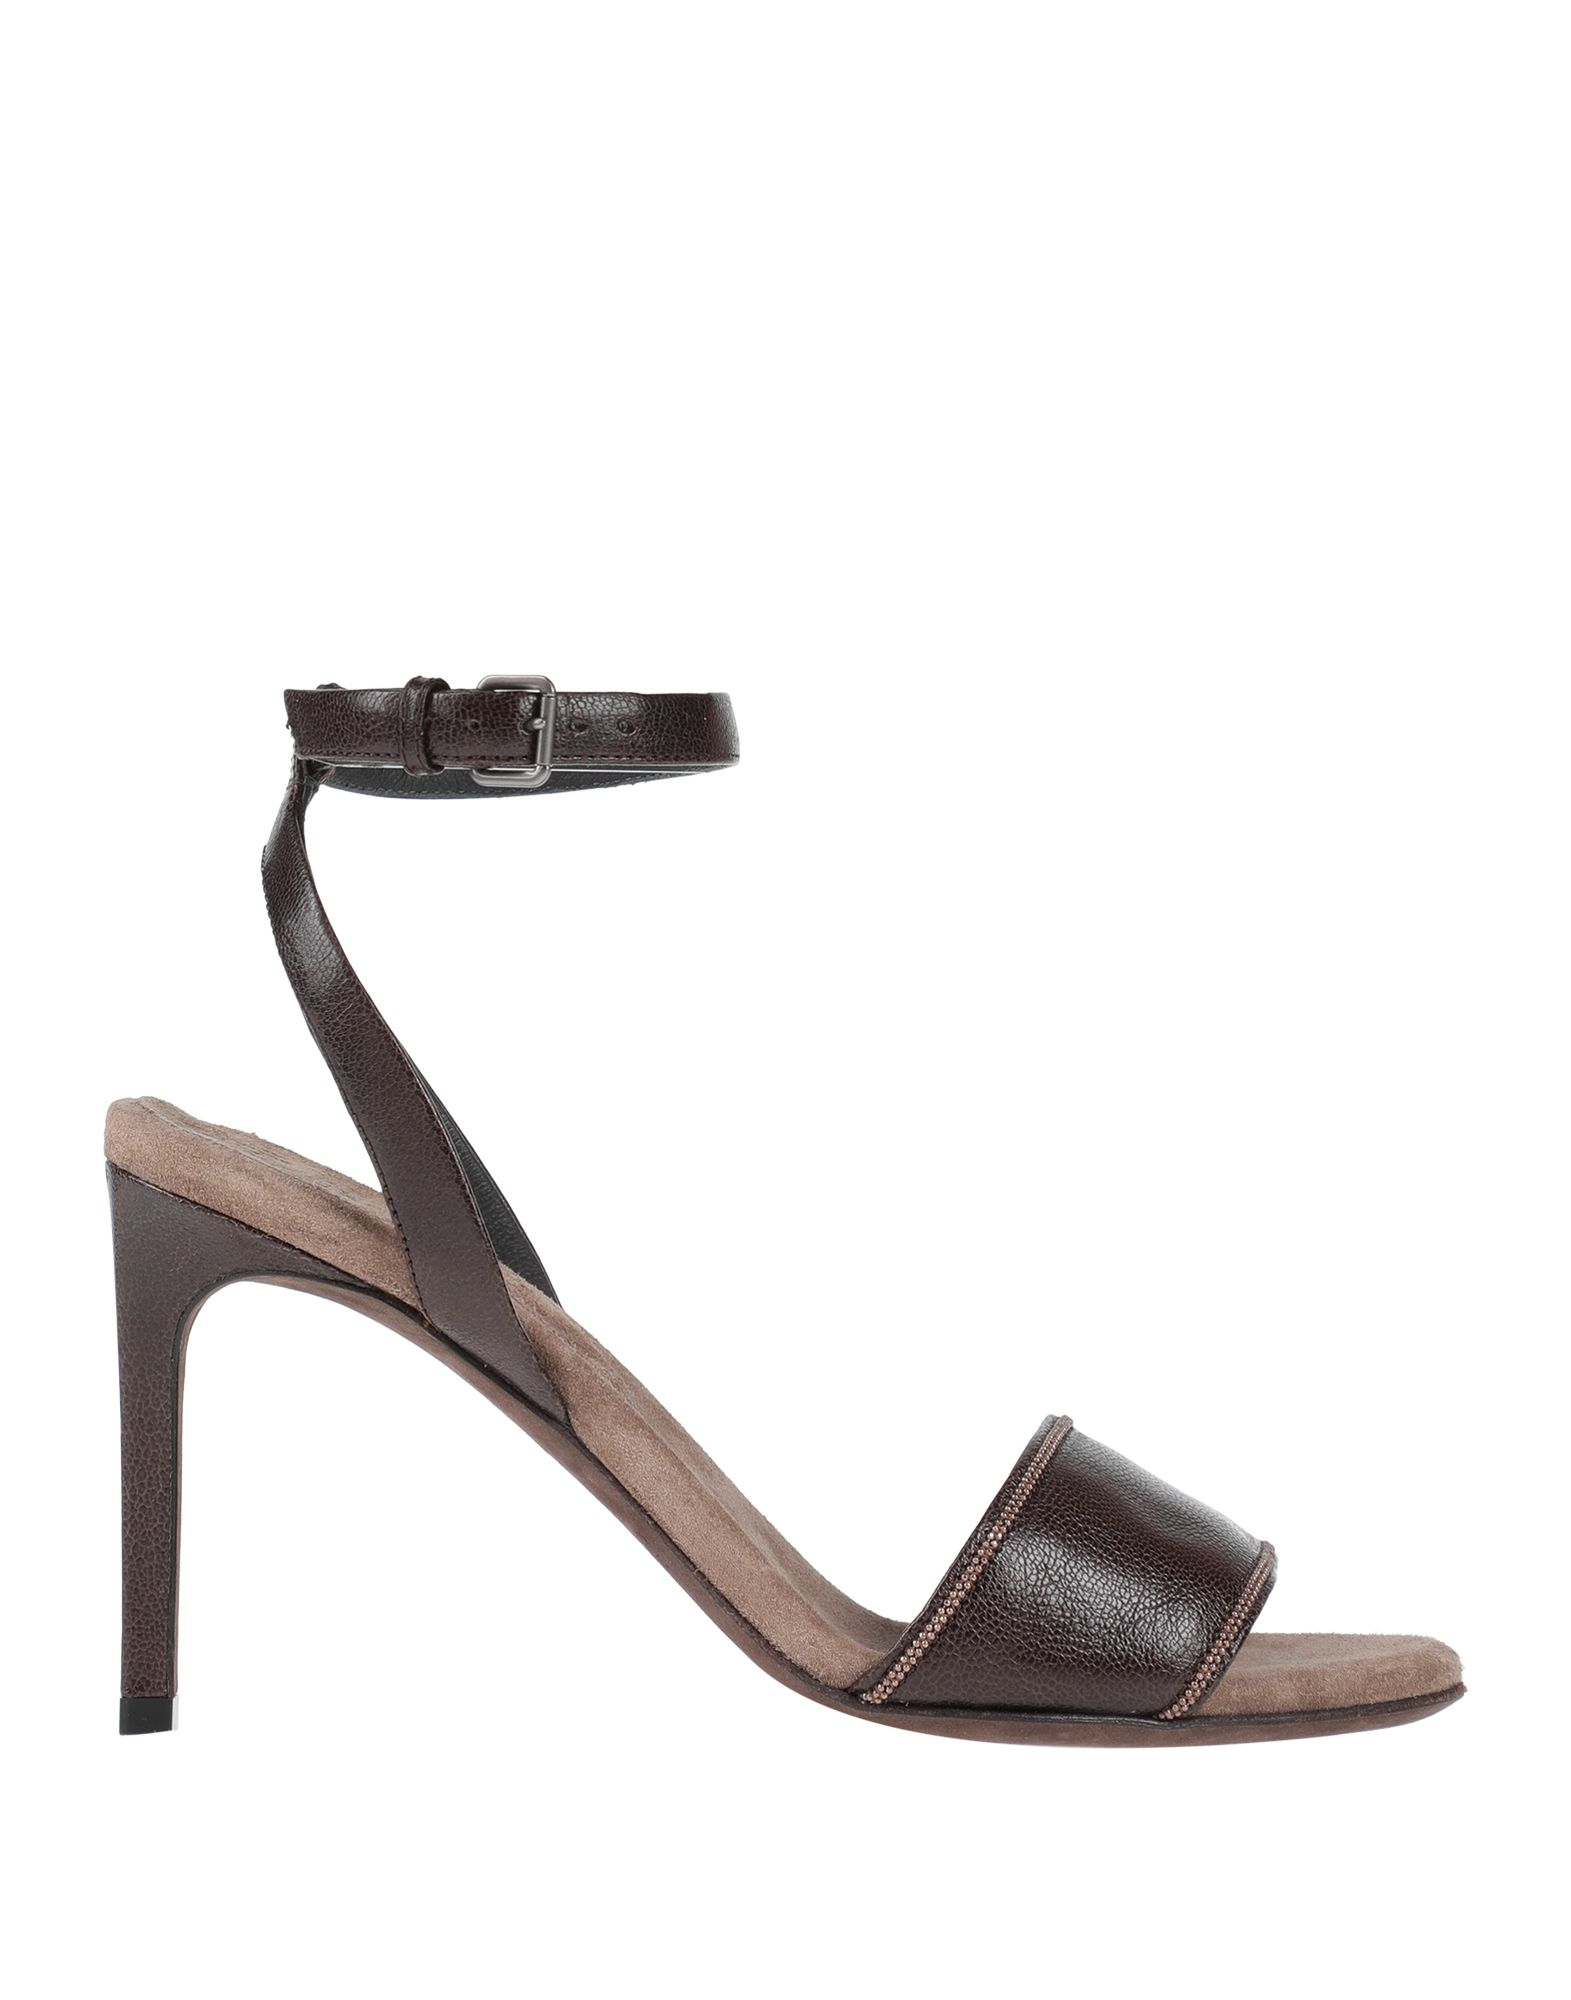 BRUNELLO CUCINELLI Sandals. contrasting applications, solid color, buckling ankle strap closure, round toeline, stiletto heel, covered heel, leather lining, leather/rubber sole, contains non-textile parts of animal origin. Soft Leather